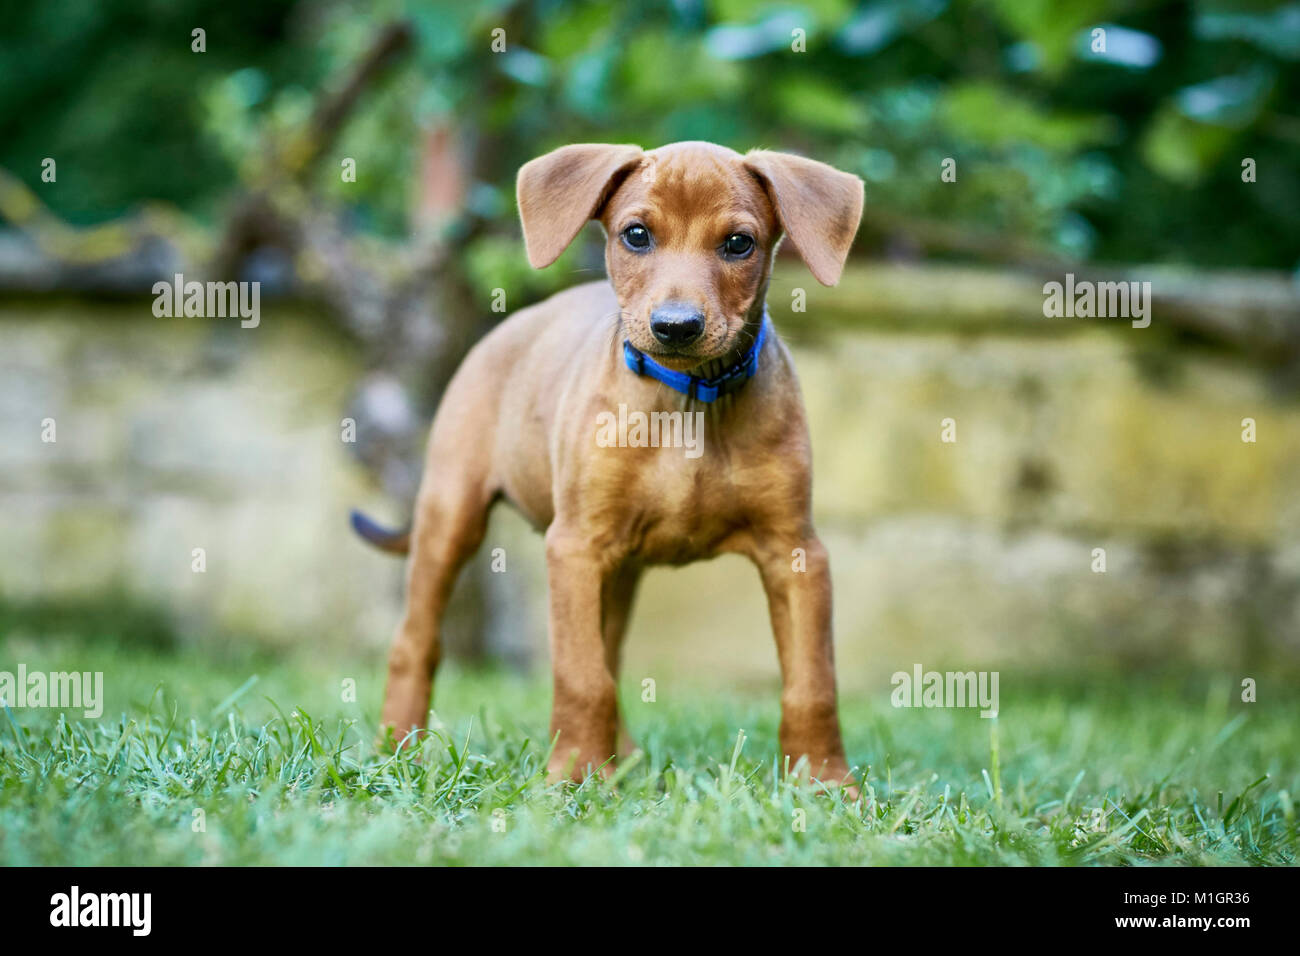 German Pinscher. Puppy standing on a lawn. Germany.. - Stock Image